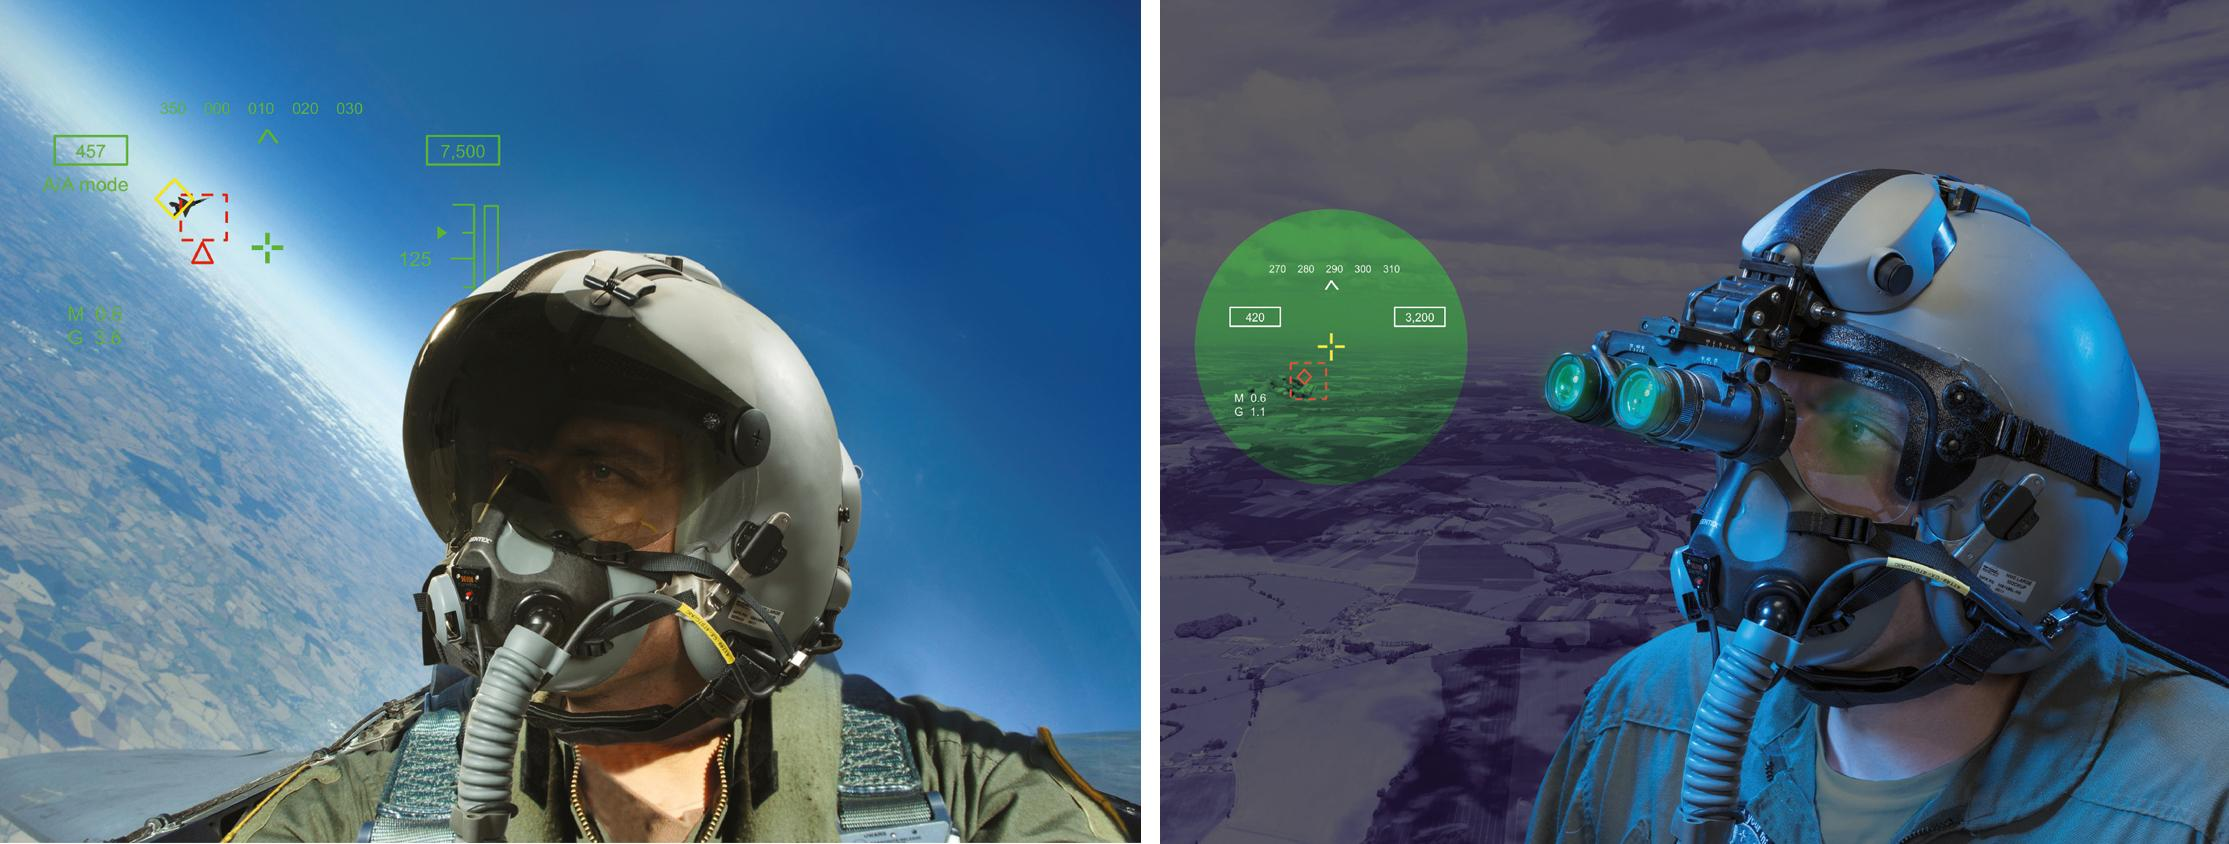 The Joint Helmet Mounted Cueing System II